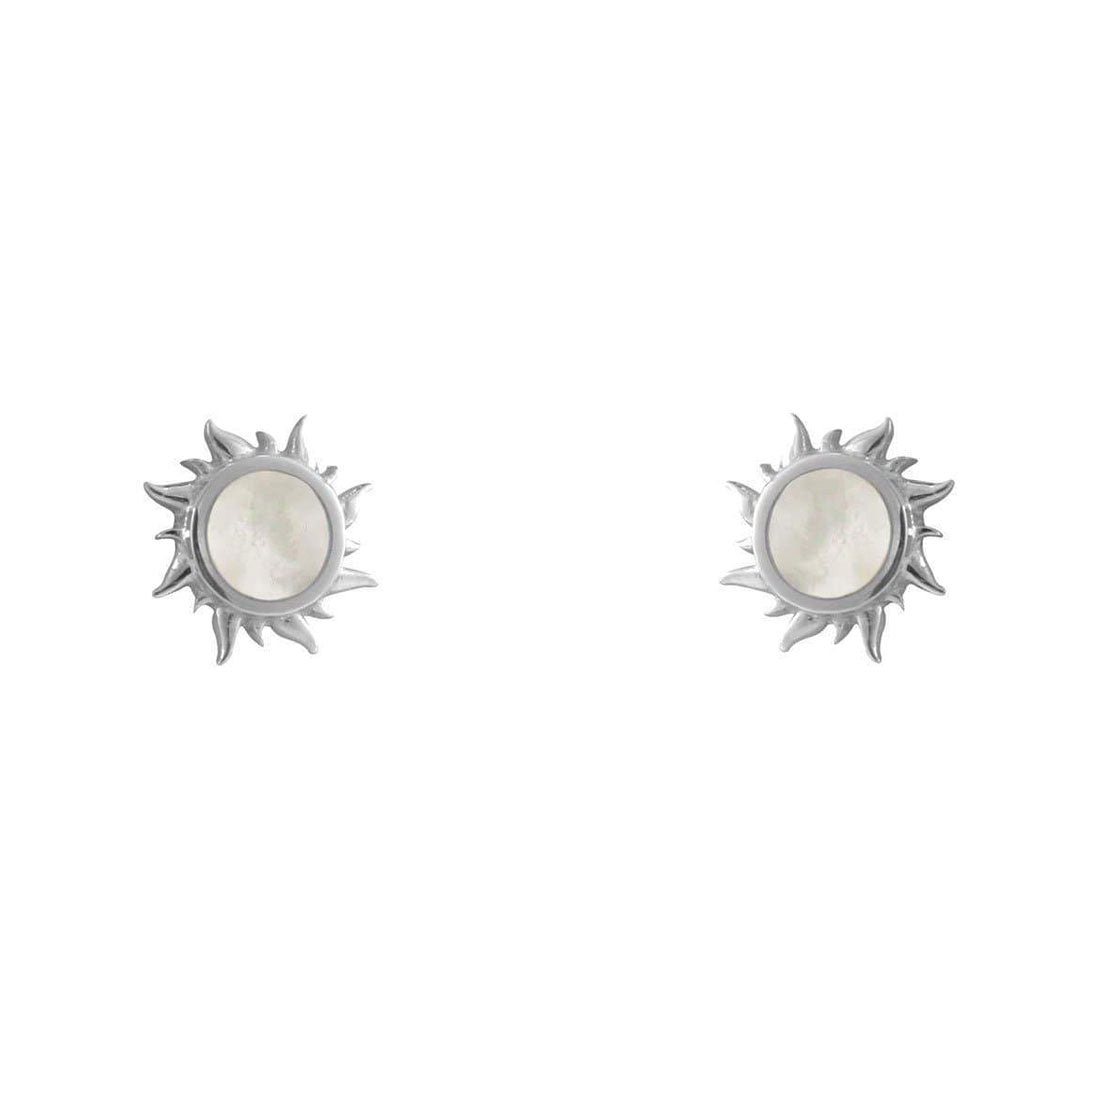 Midsummer Star Earrings Iridescent Dawn Studs